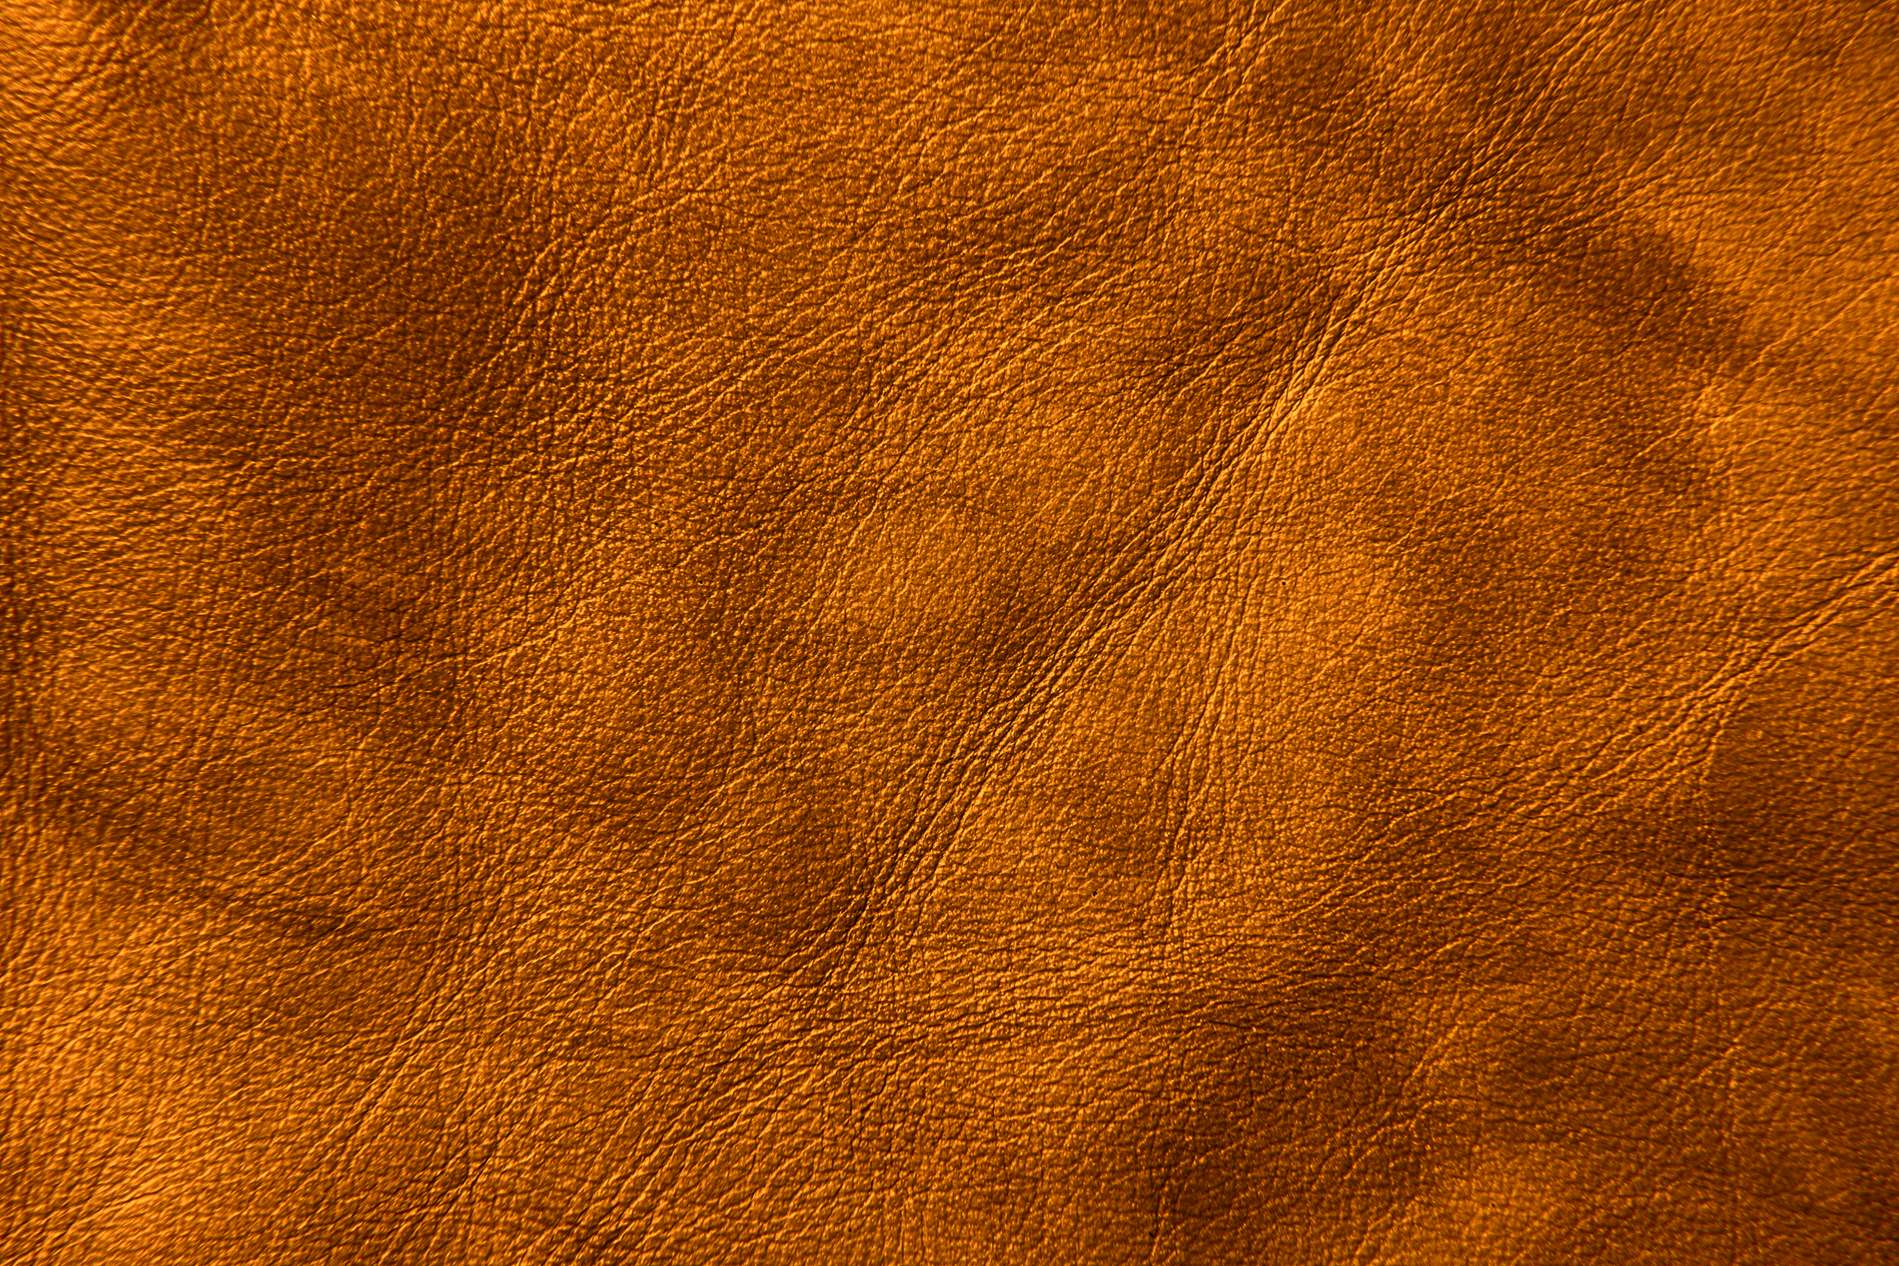 yellow-gold-vintage-leather-texture-background